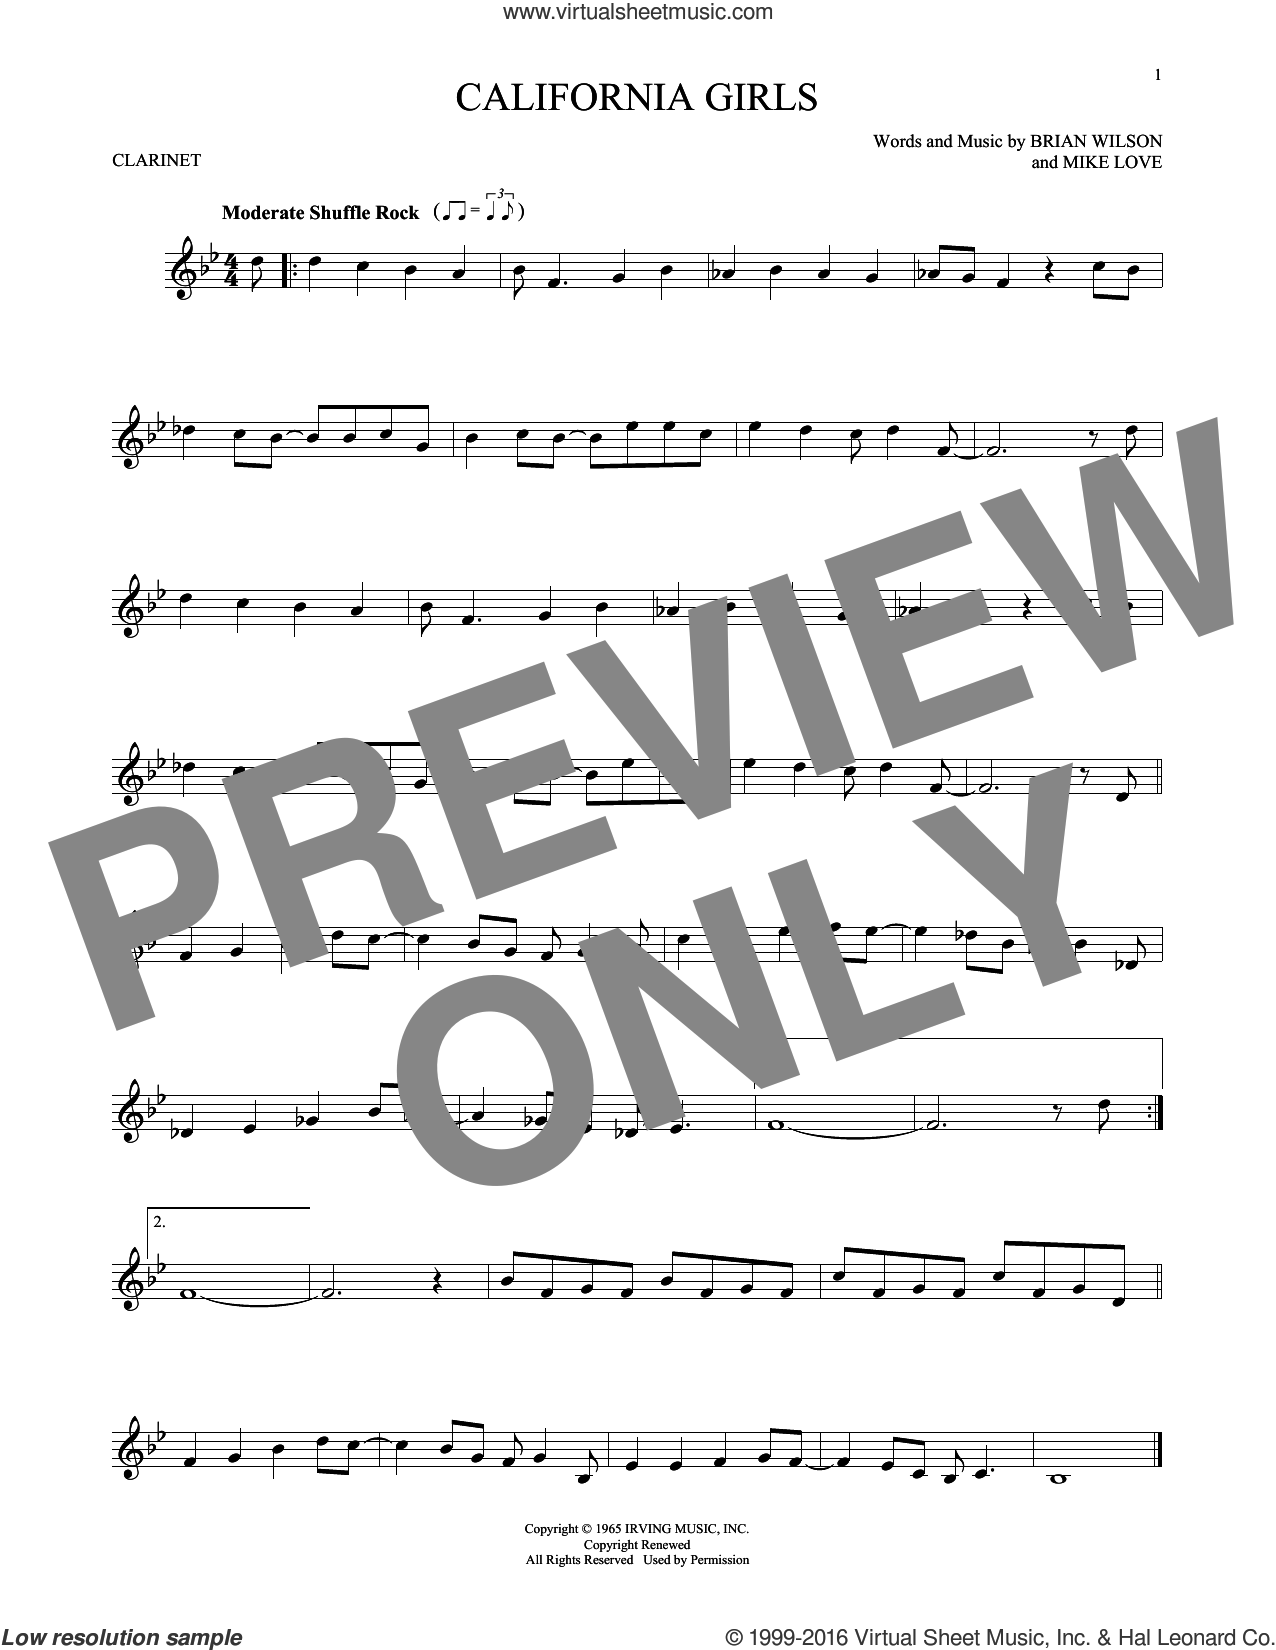 California Girls sheet music for clarinet solo by The Beach Boys, David Lee Roth, Brian Wilson and Mike Love, intermediate skill level